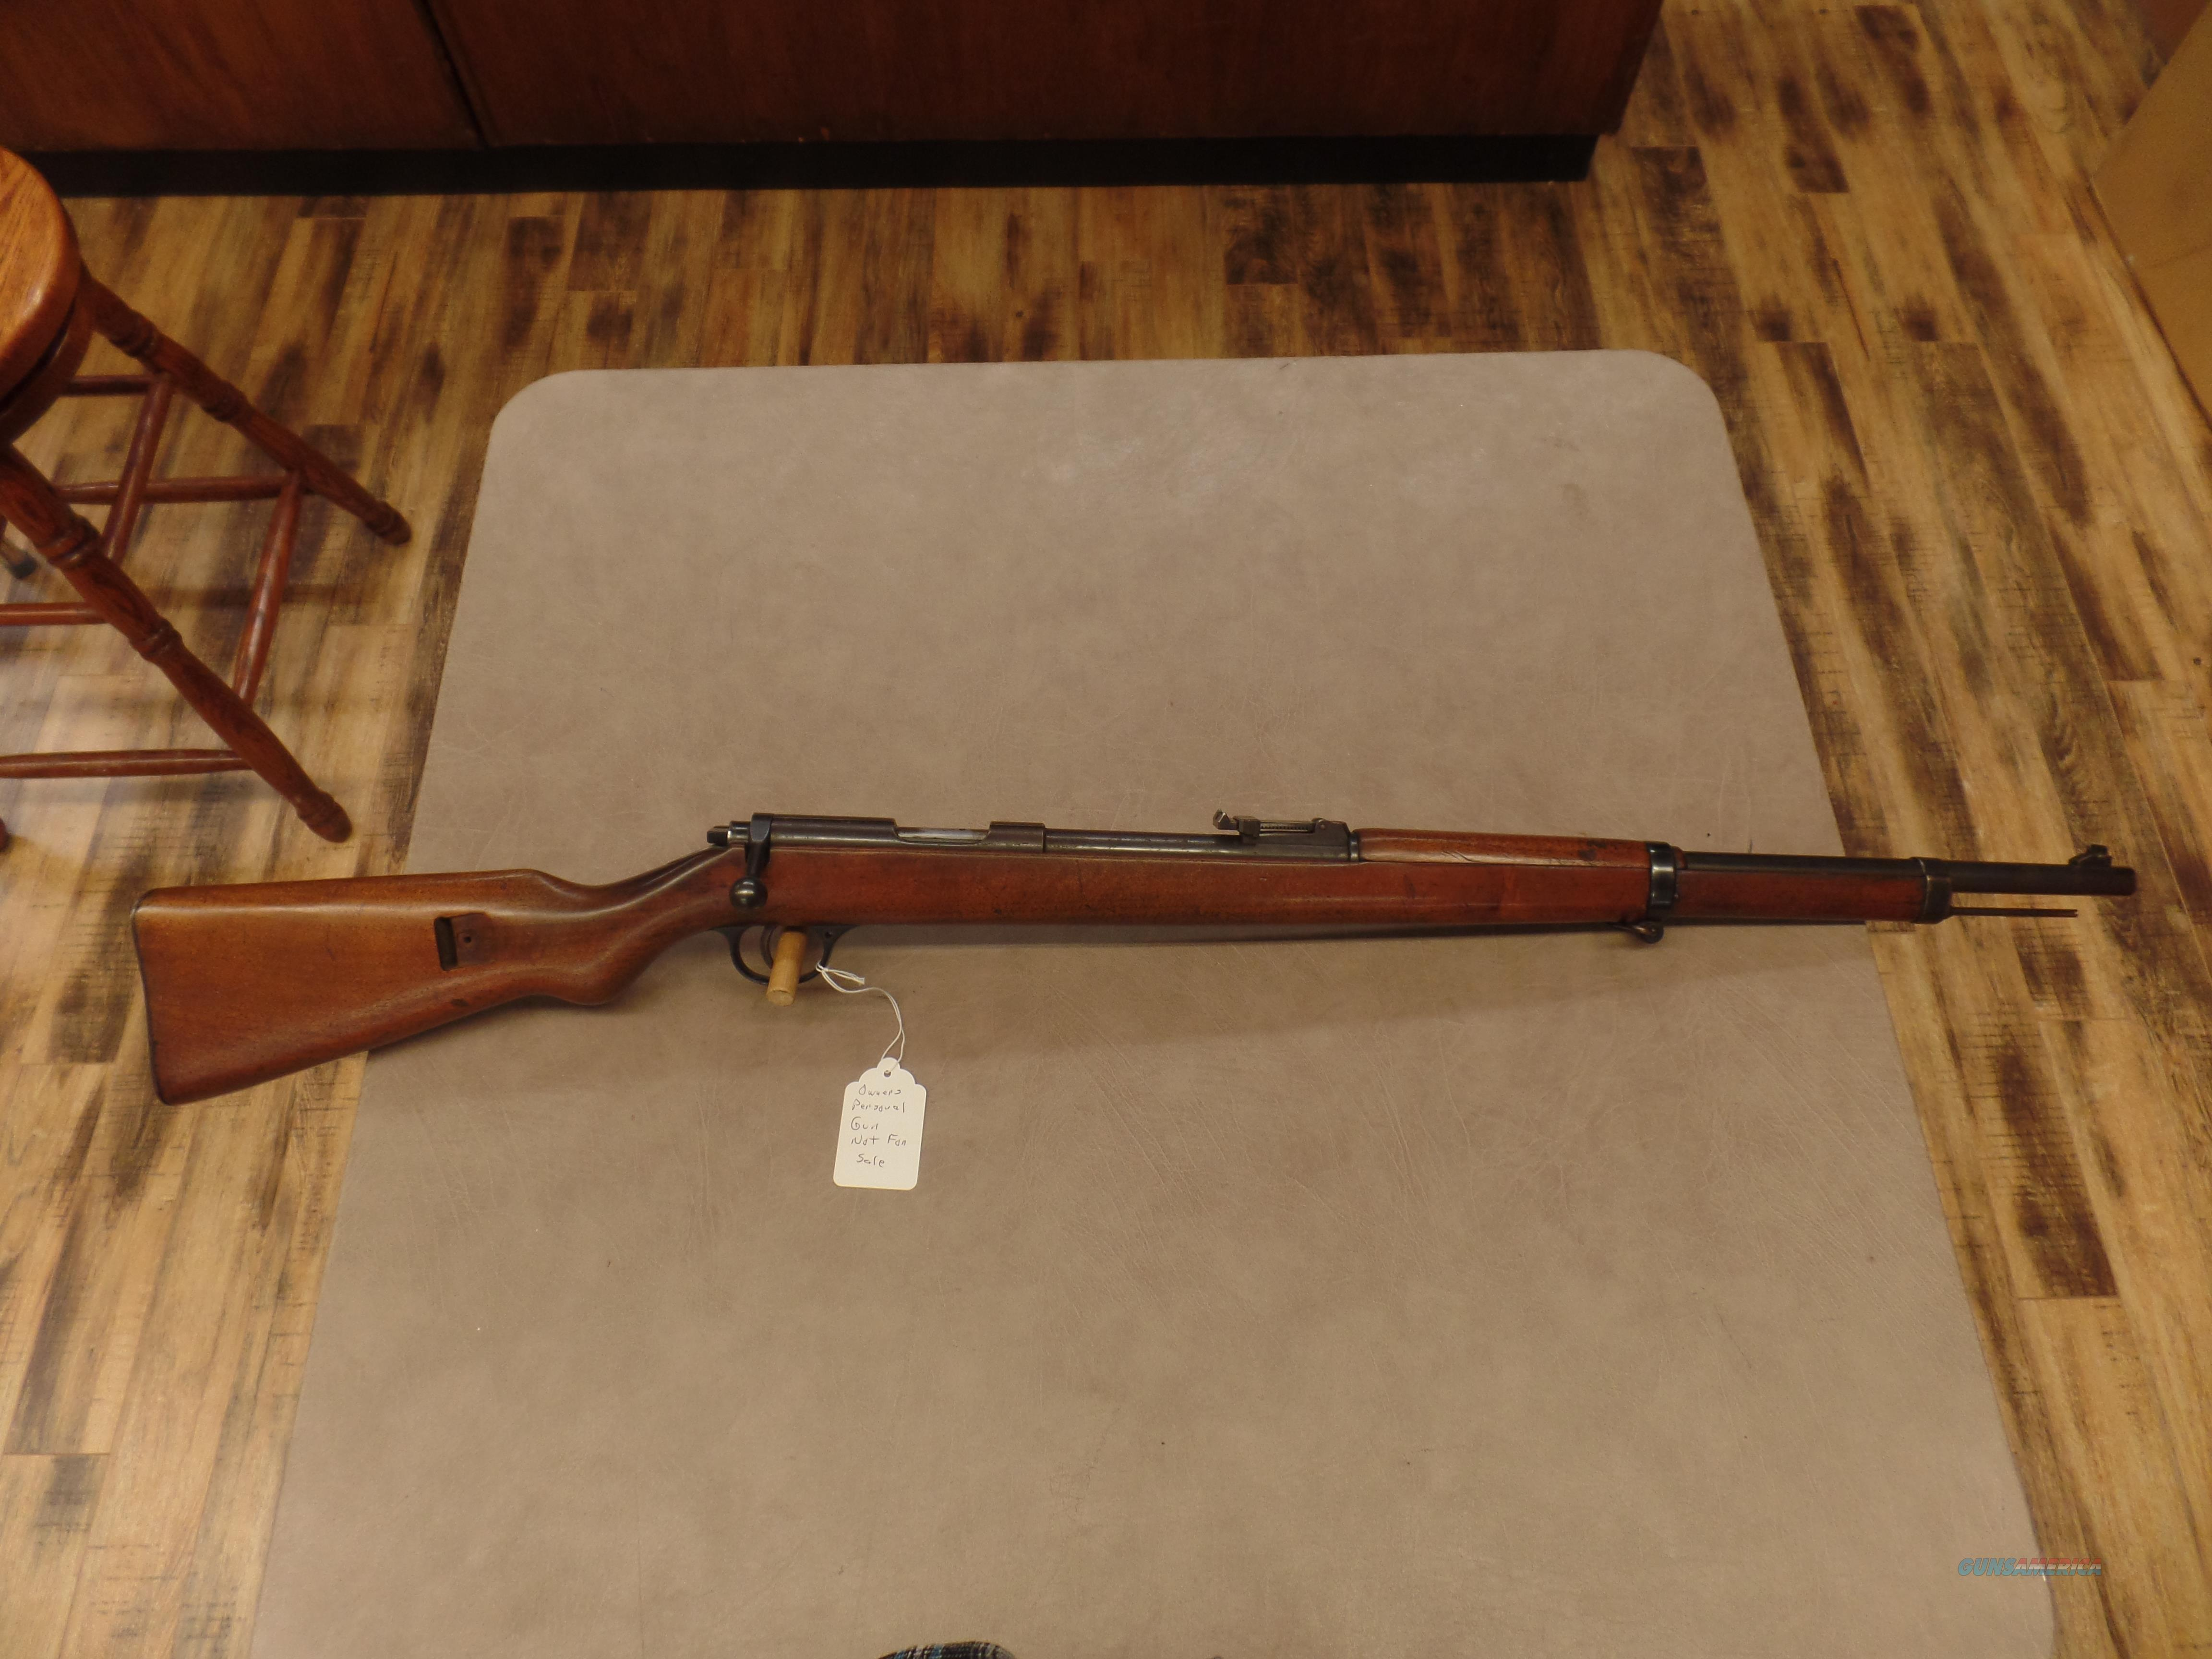 WWII German Wather Sports Model Trainer VERY NICE (22LR)  Guns > Rifles > Military Misc. Rifles Non-US > Other